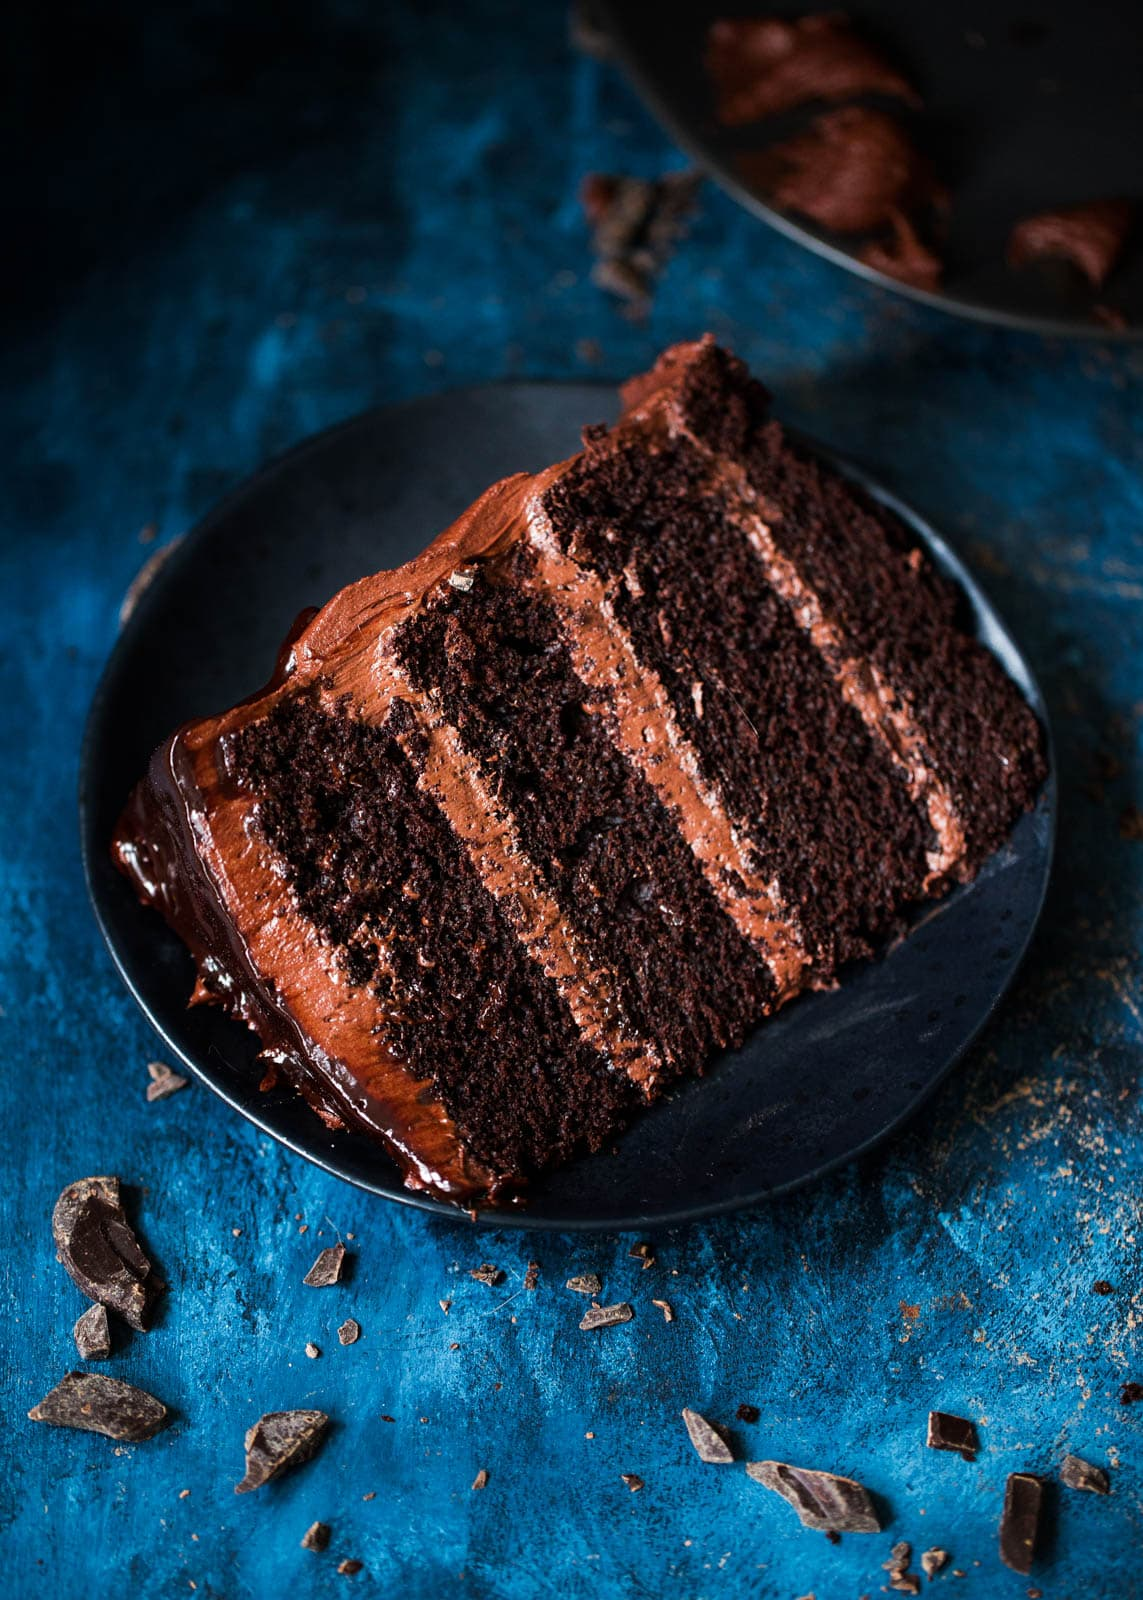 slice of Chocolate Mocha Cake